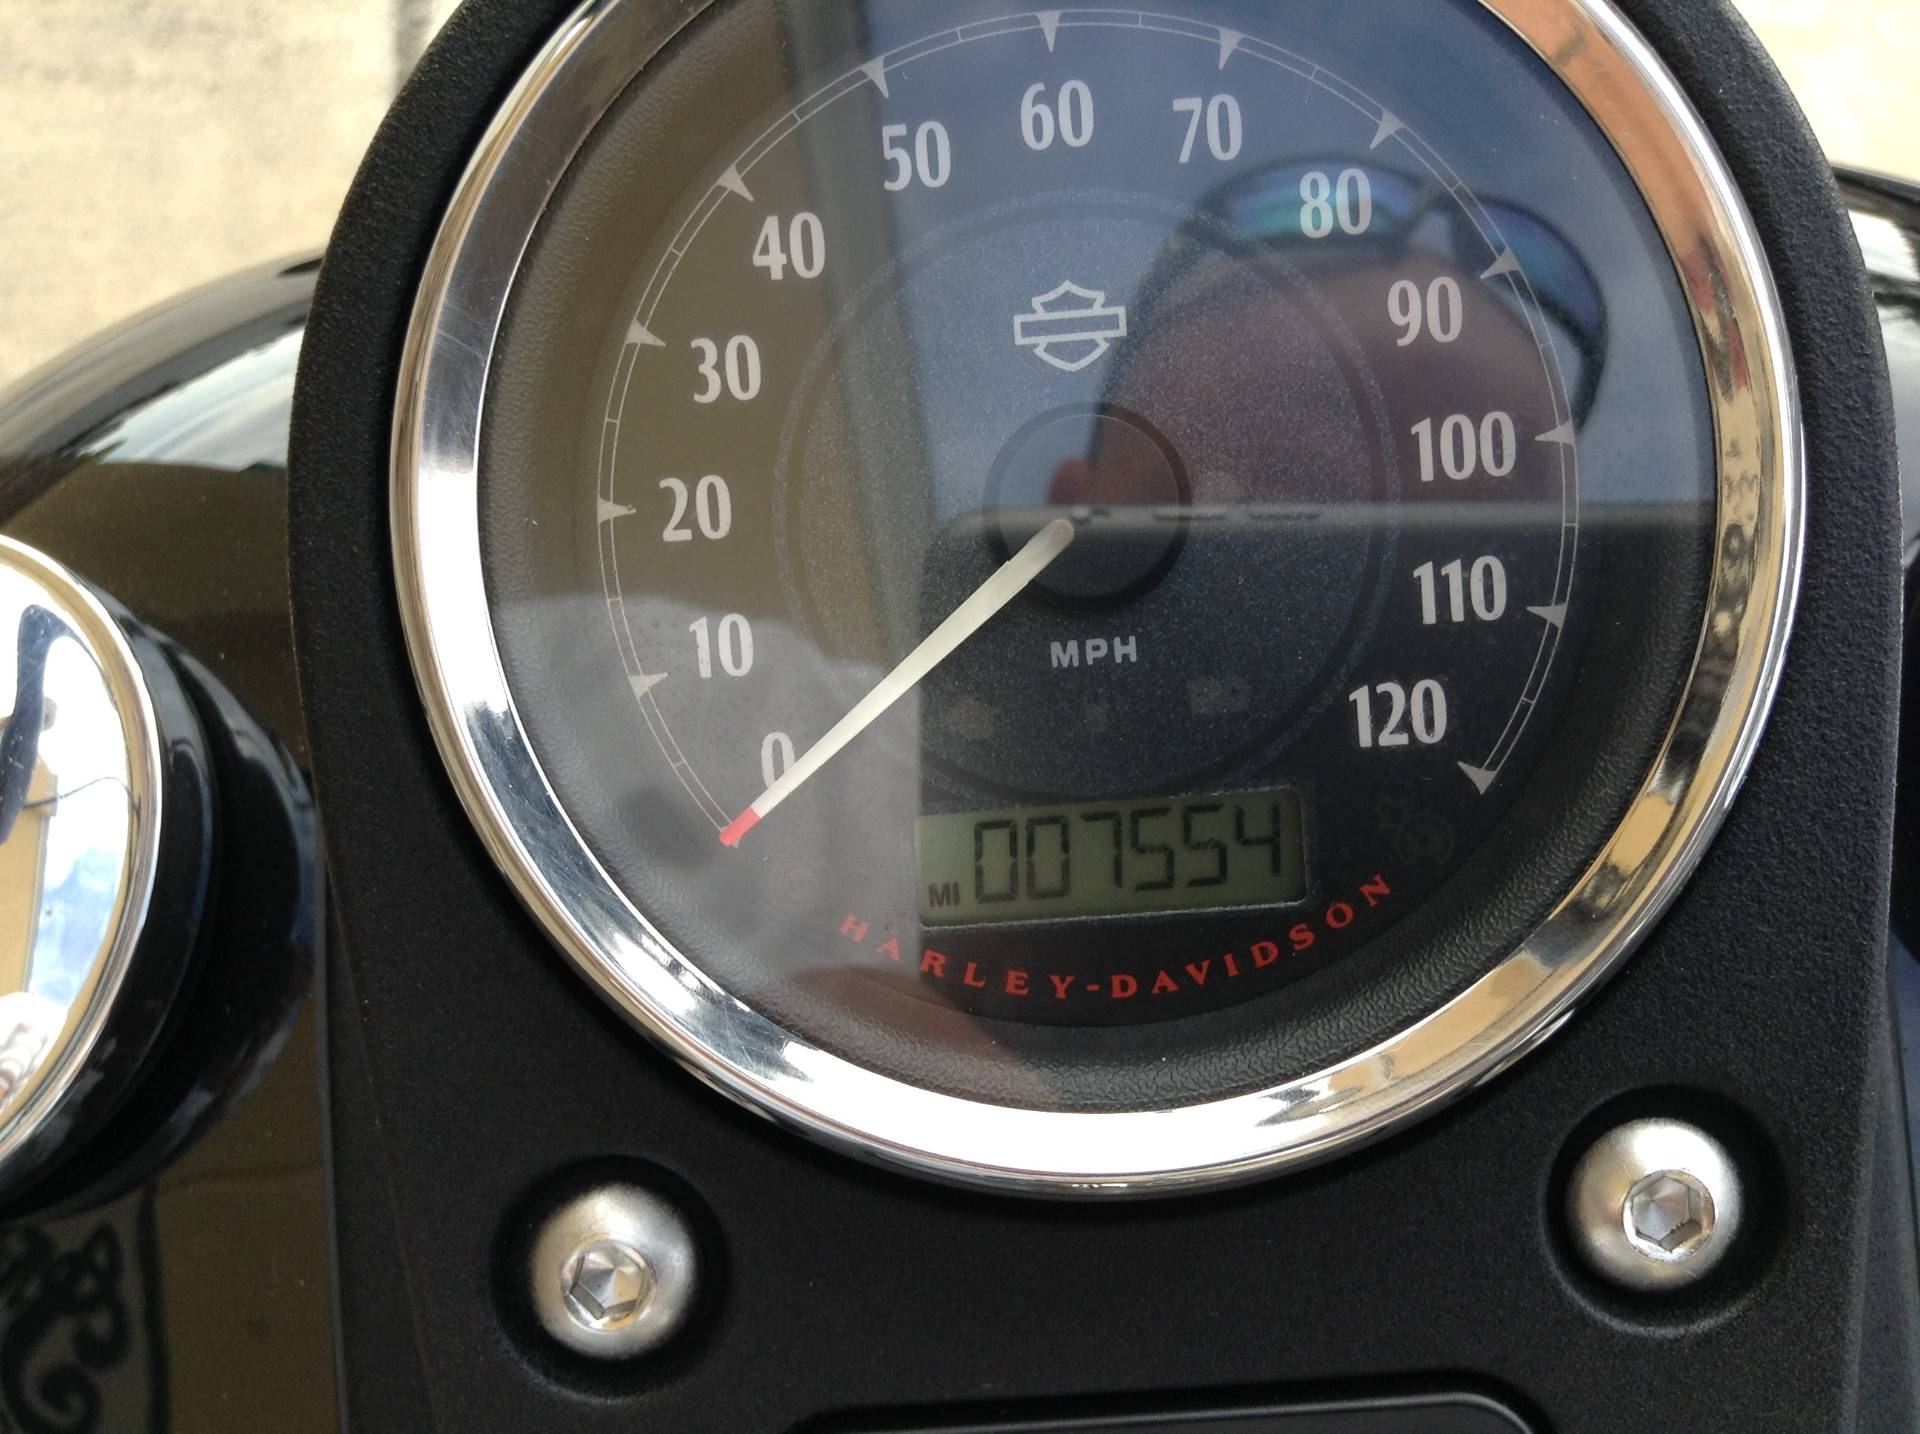 2014 Harley-Davidson STREET BOB in Panama City Beach, Florida - Photo 14